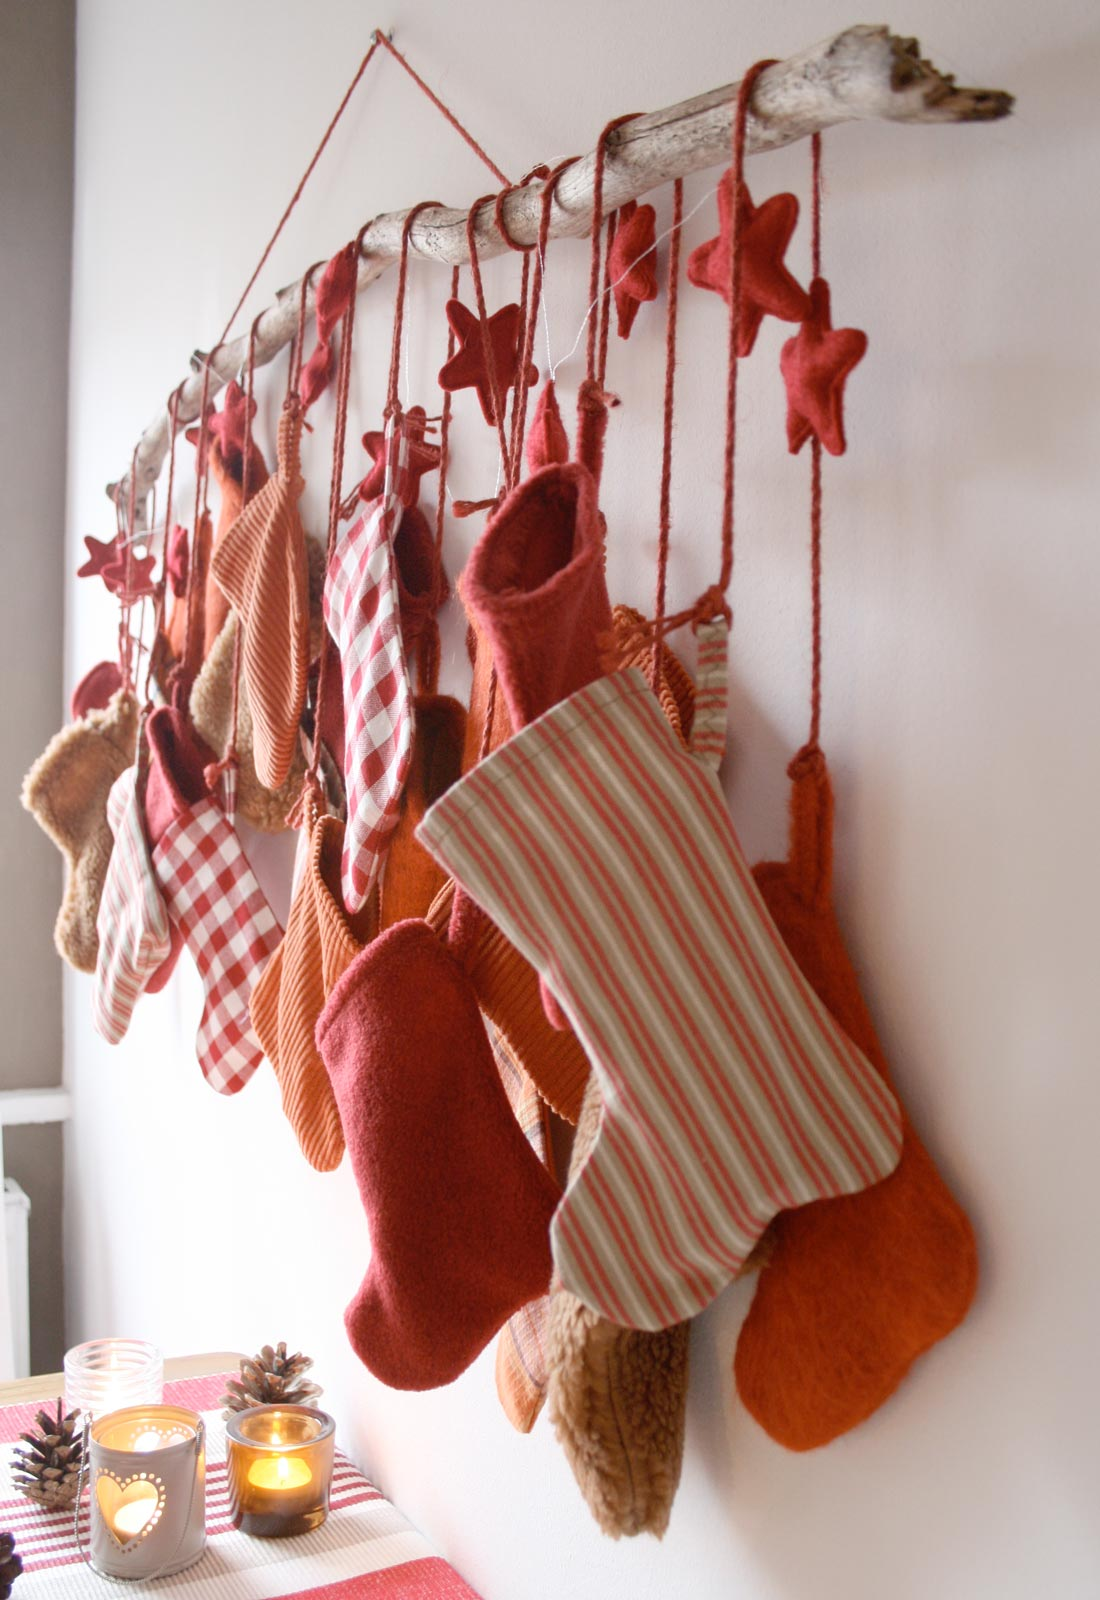 Adventskalender mit genähten Socken in rot-orange